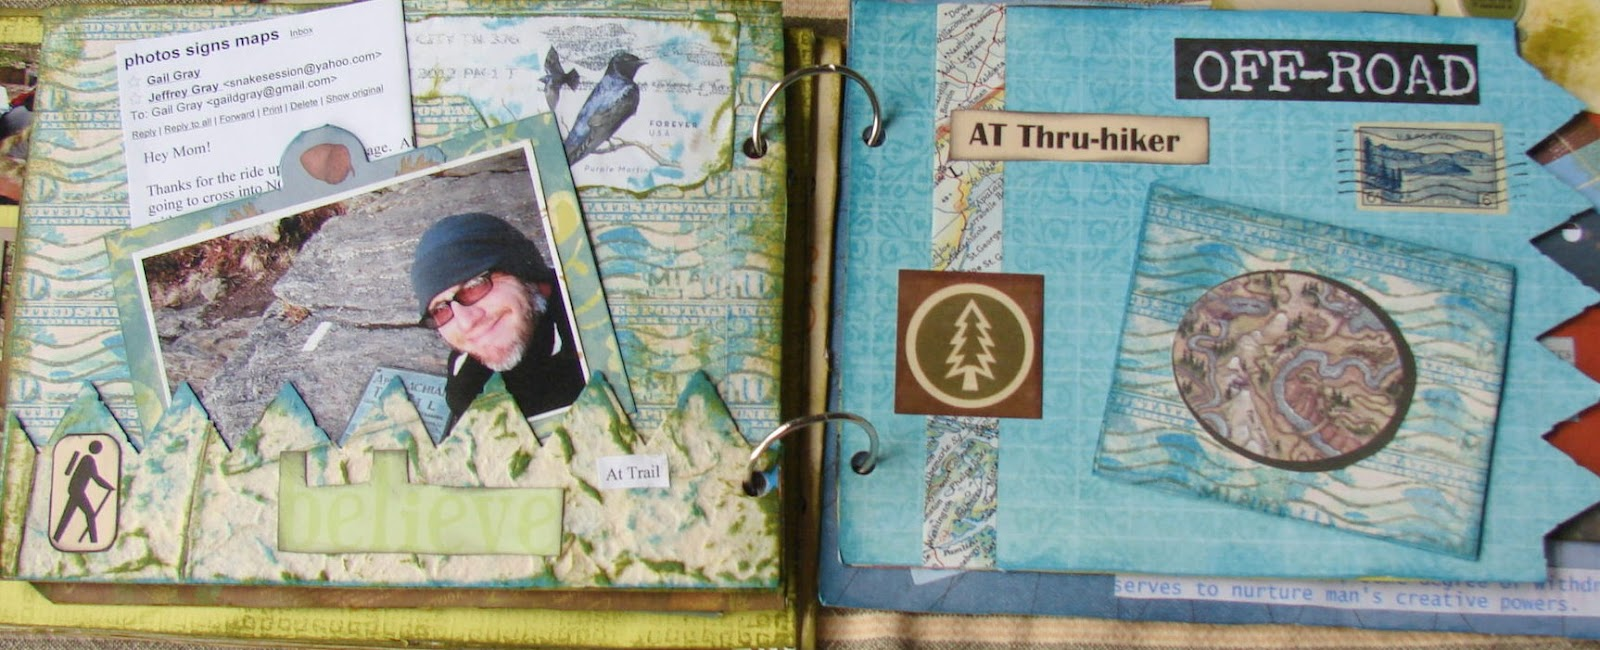 How to scrapbook yahoo - In A Post Long Long Ago I Mentioned A In A Post That I Was Making What They Call In The Scrapbooking World A Mini Photo Album